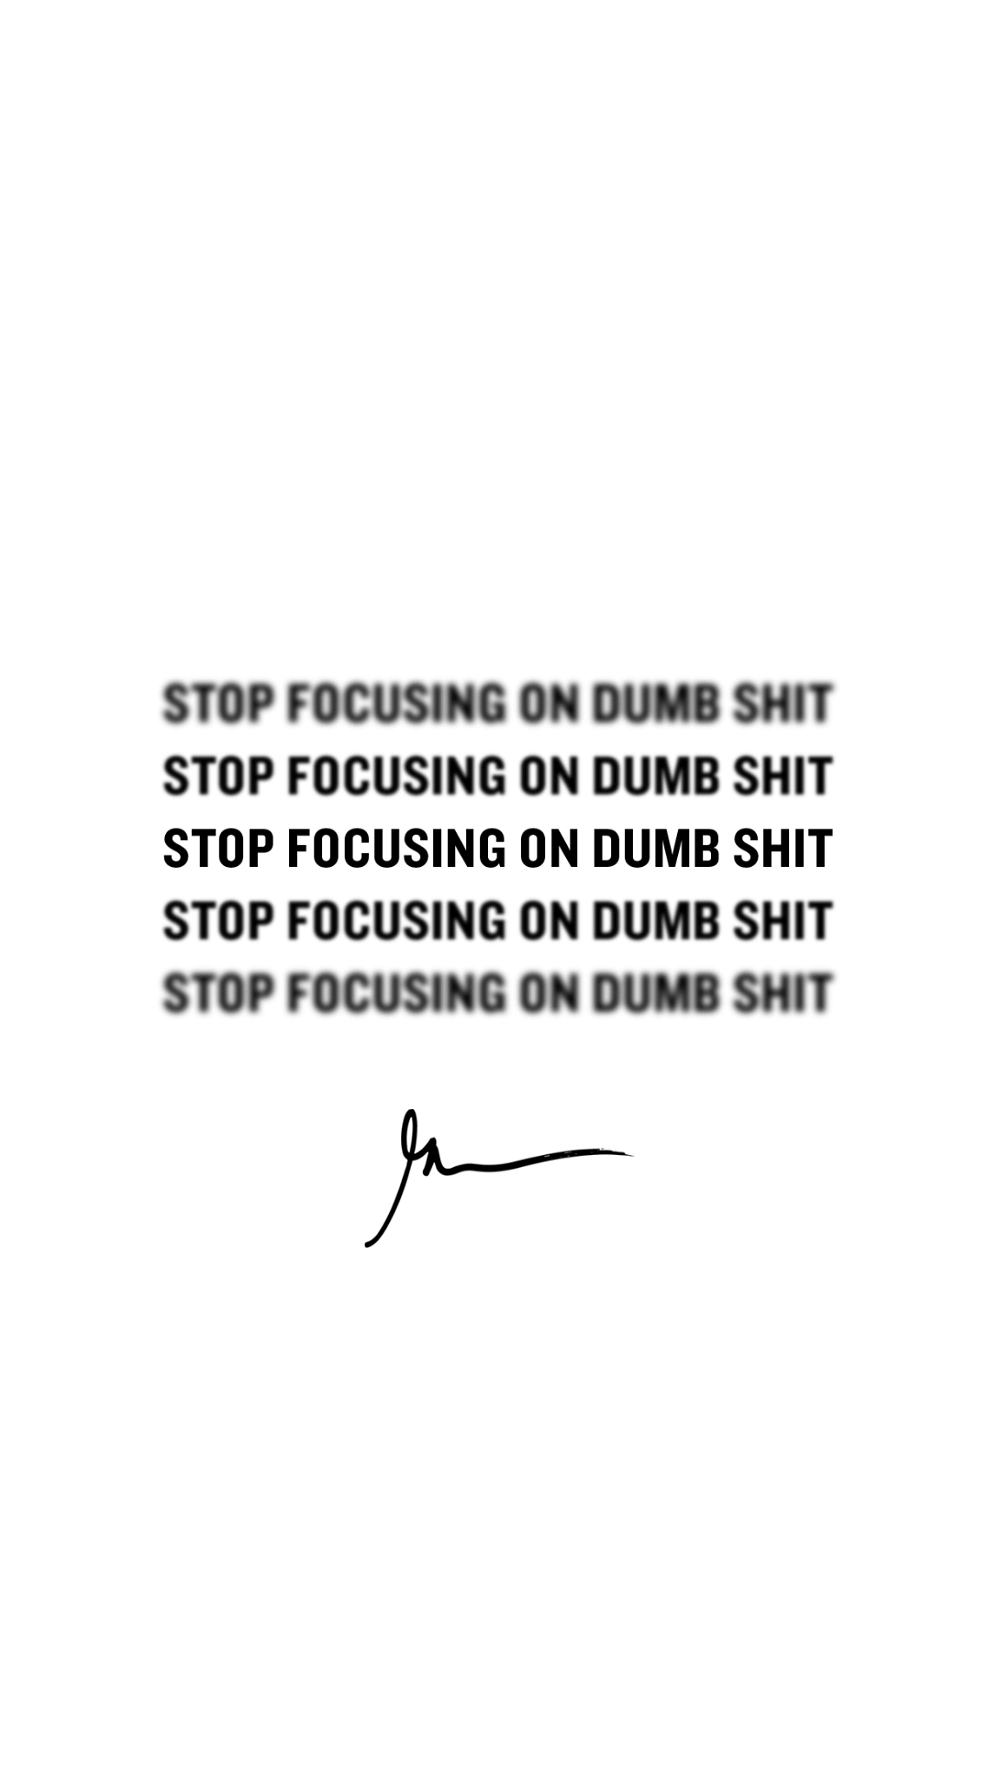 Stop Focusing On Dumb Shit